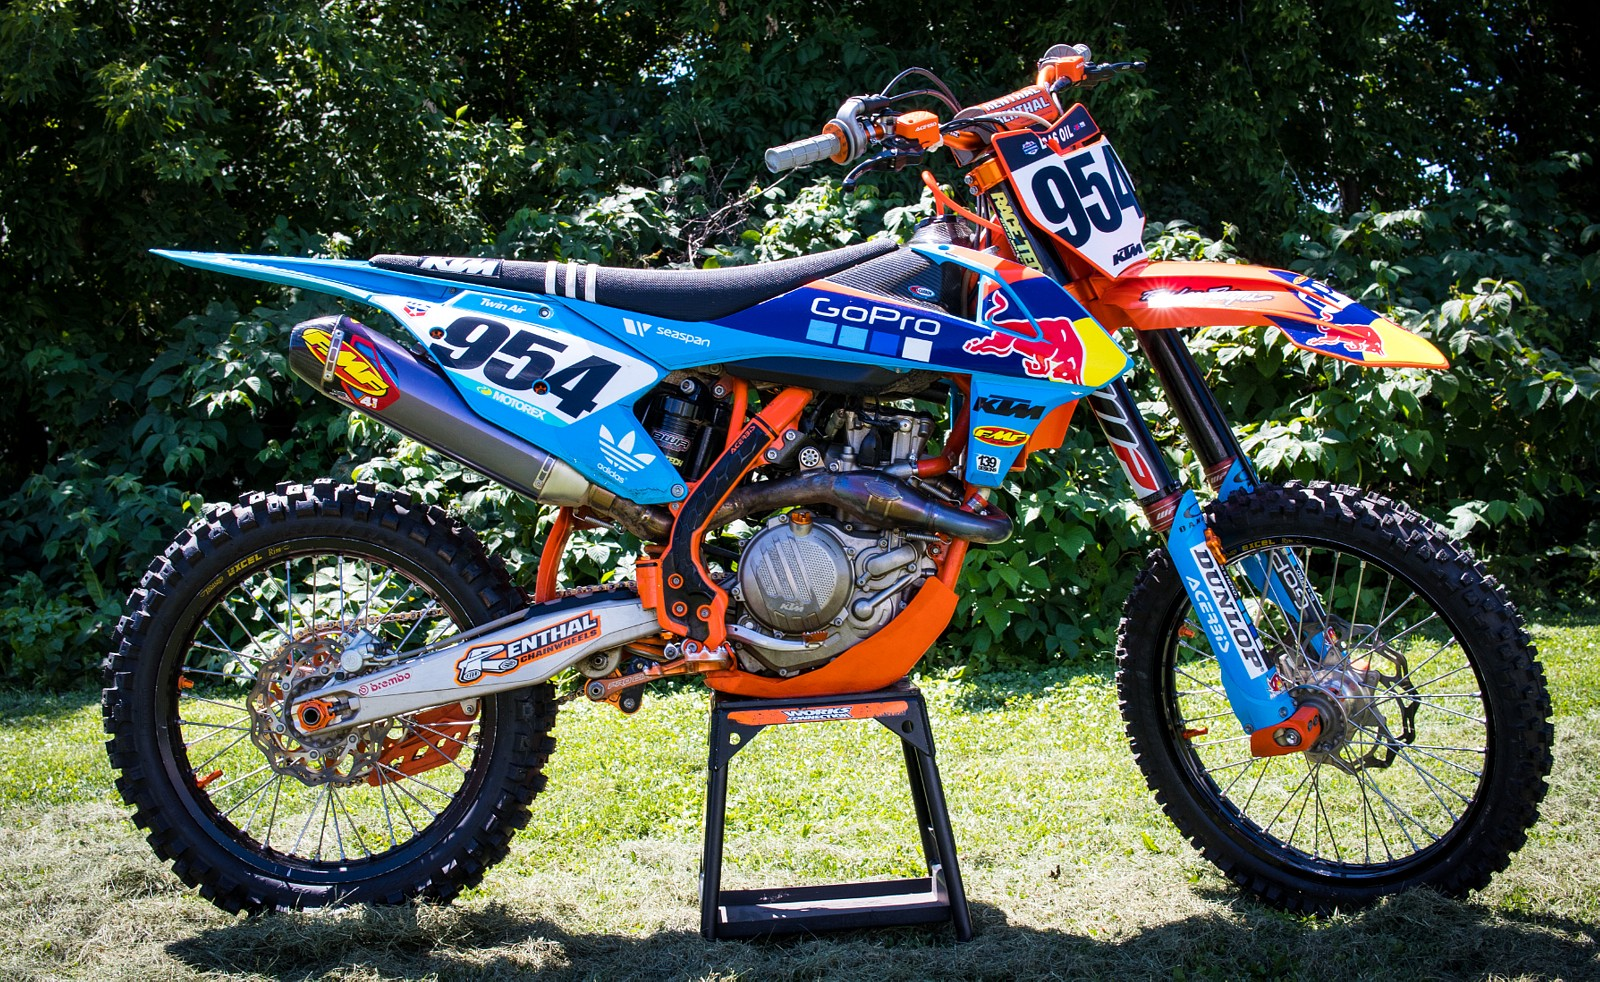 Factory Edition 2016.5 KTM 450SXF - GForce MMG - Motocross Pictures - Vital MX